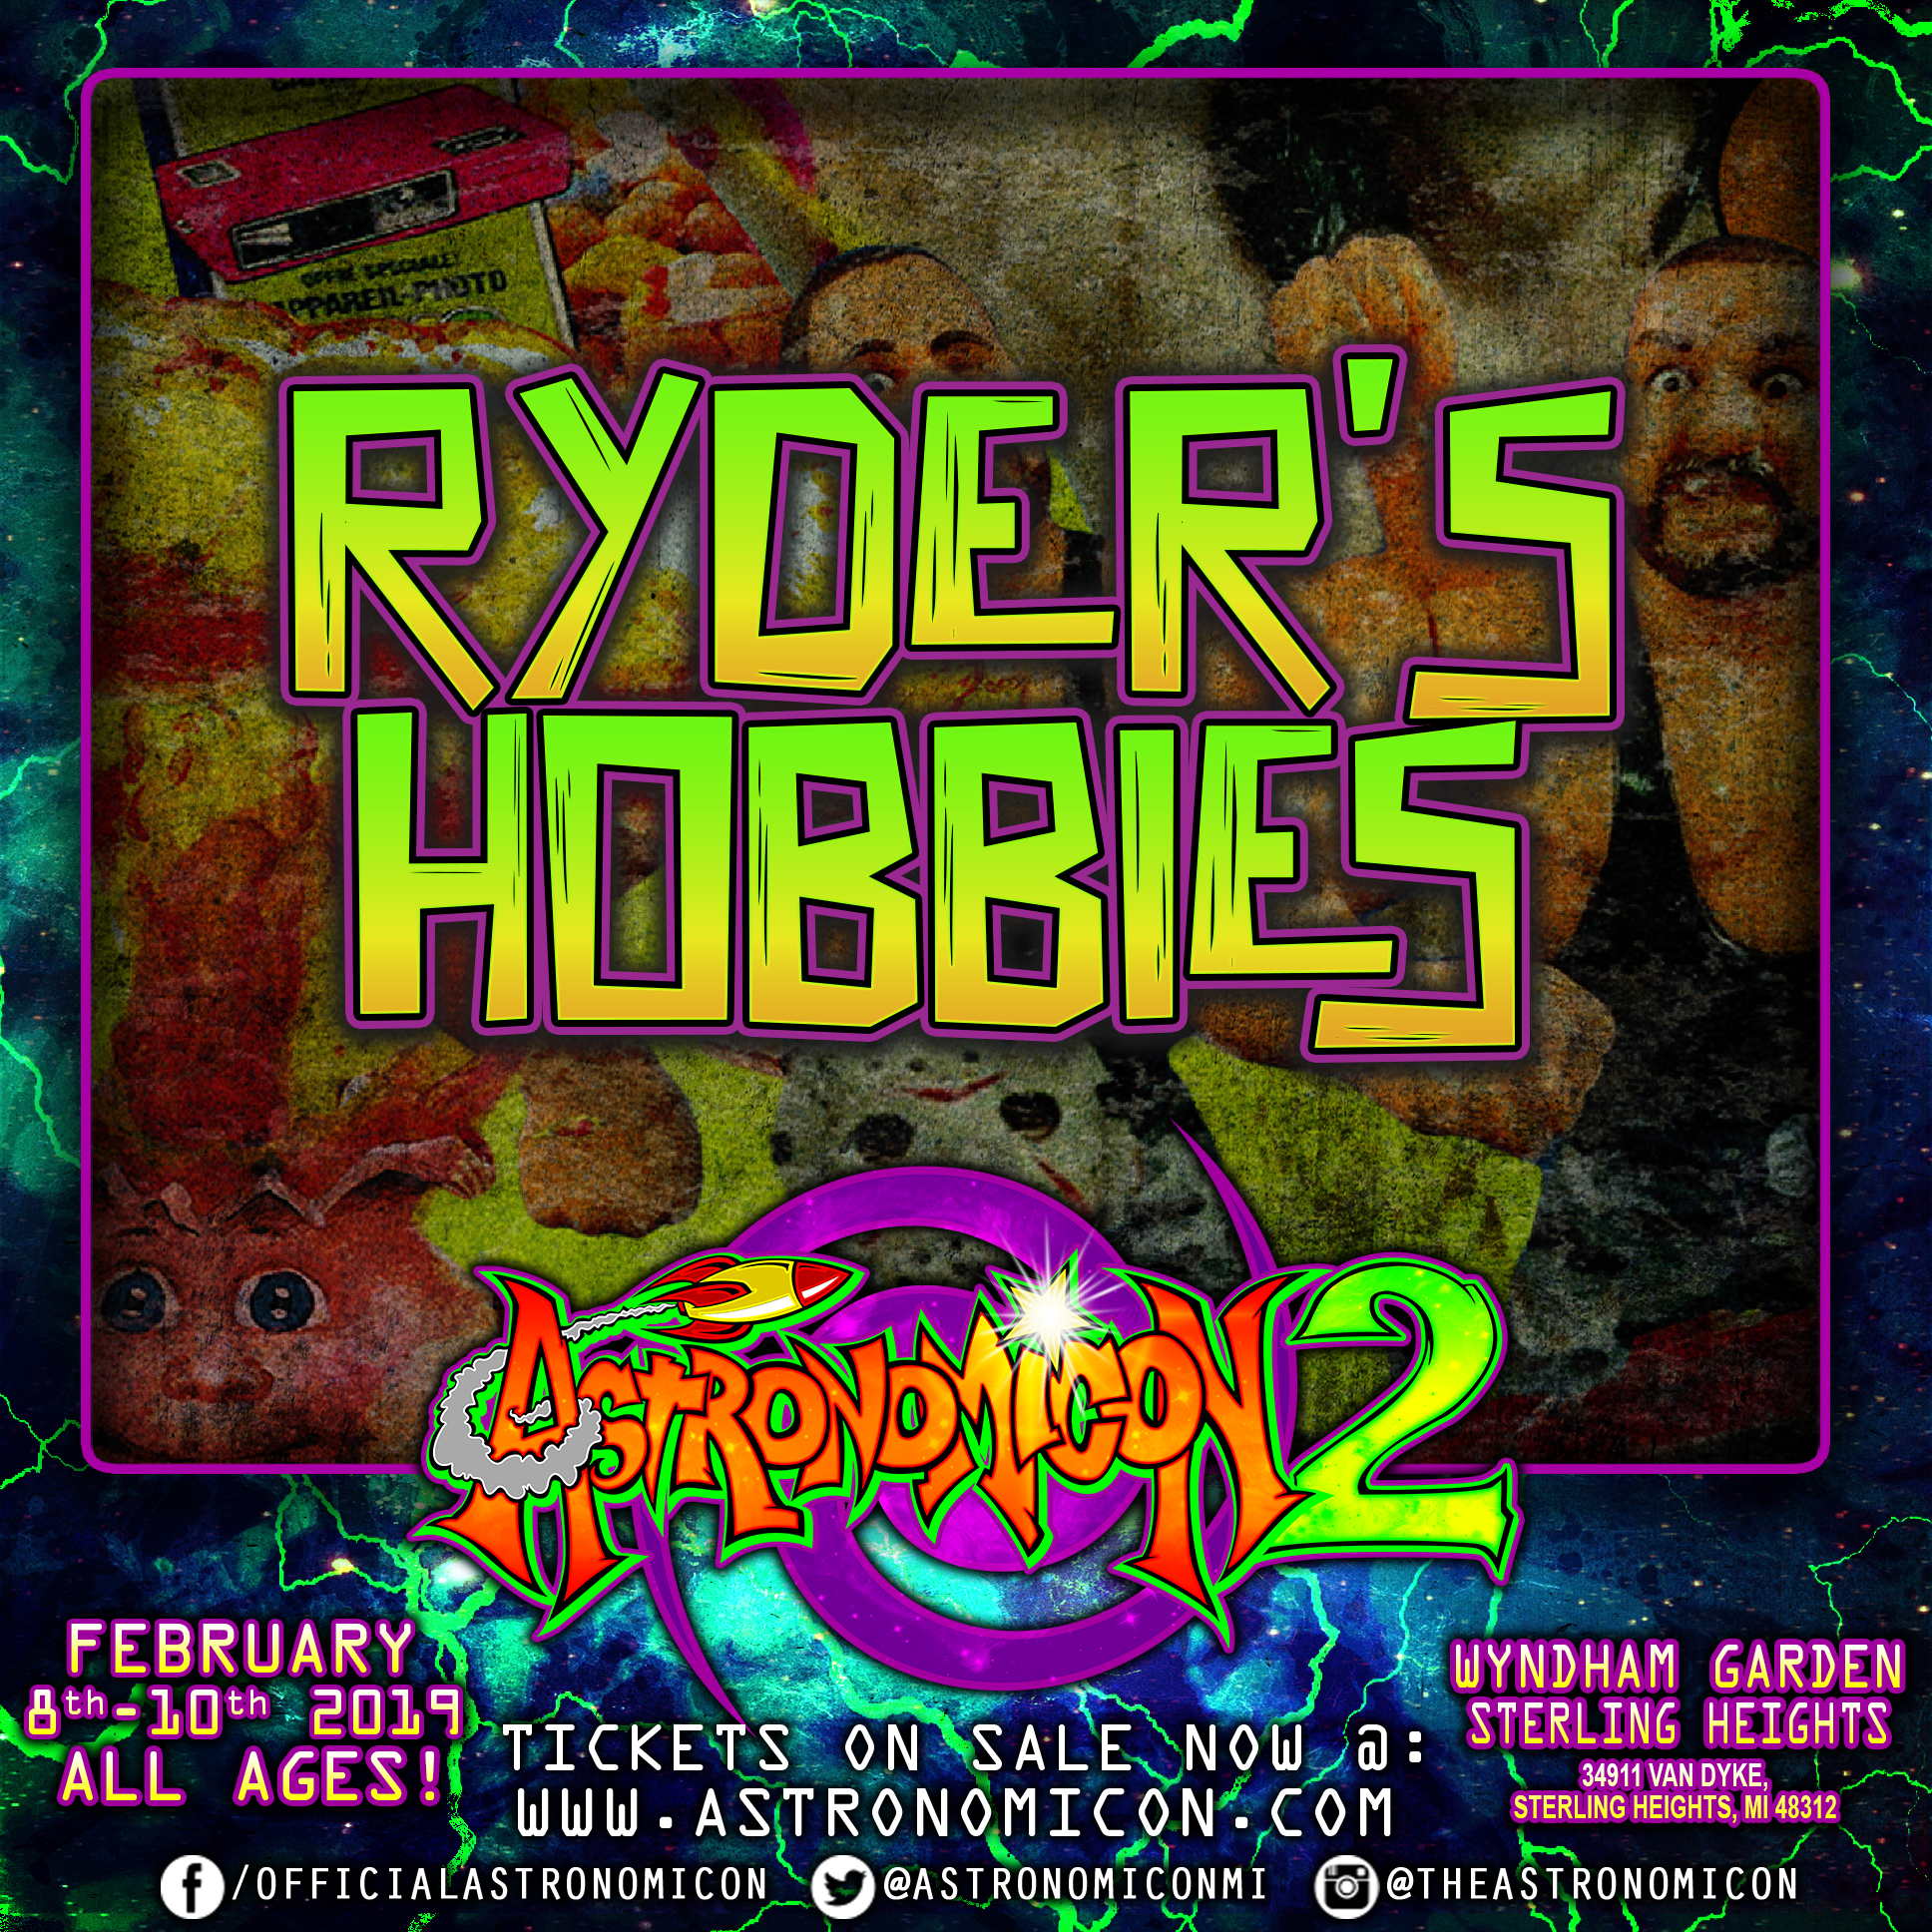 Astronomicon 2 Ryders Hobbies IG Ad.png